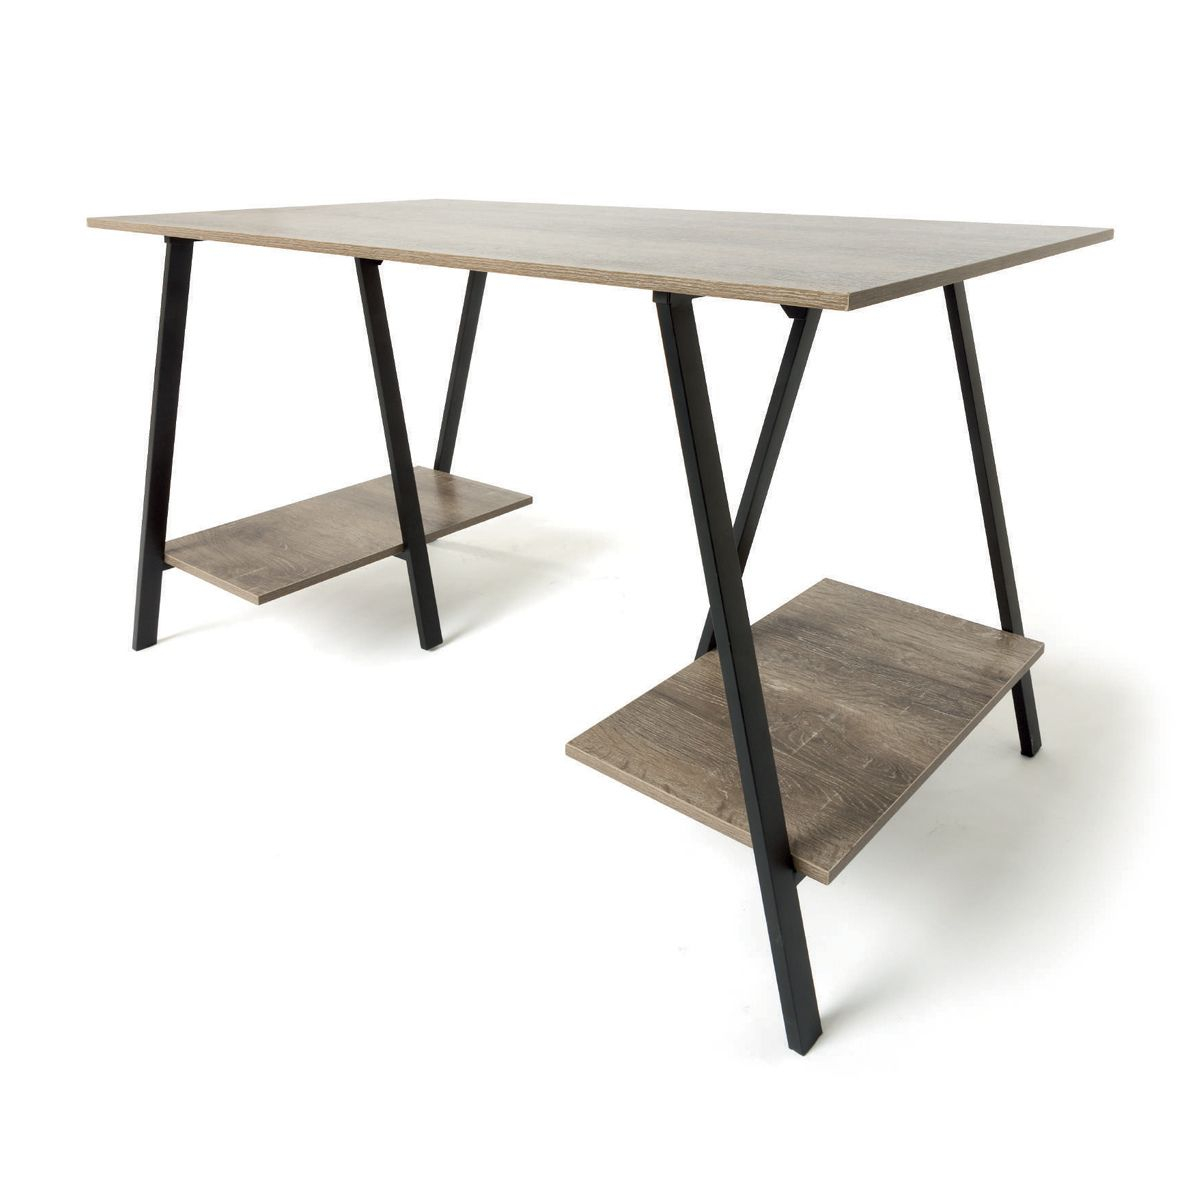 kmart industrial side table home stuff decor trestle desk outdoor small tall coffee brown wicker foot cherry wood tables shell lamp pier dining room chairs mirrored patio